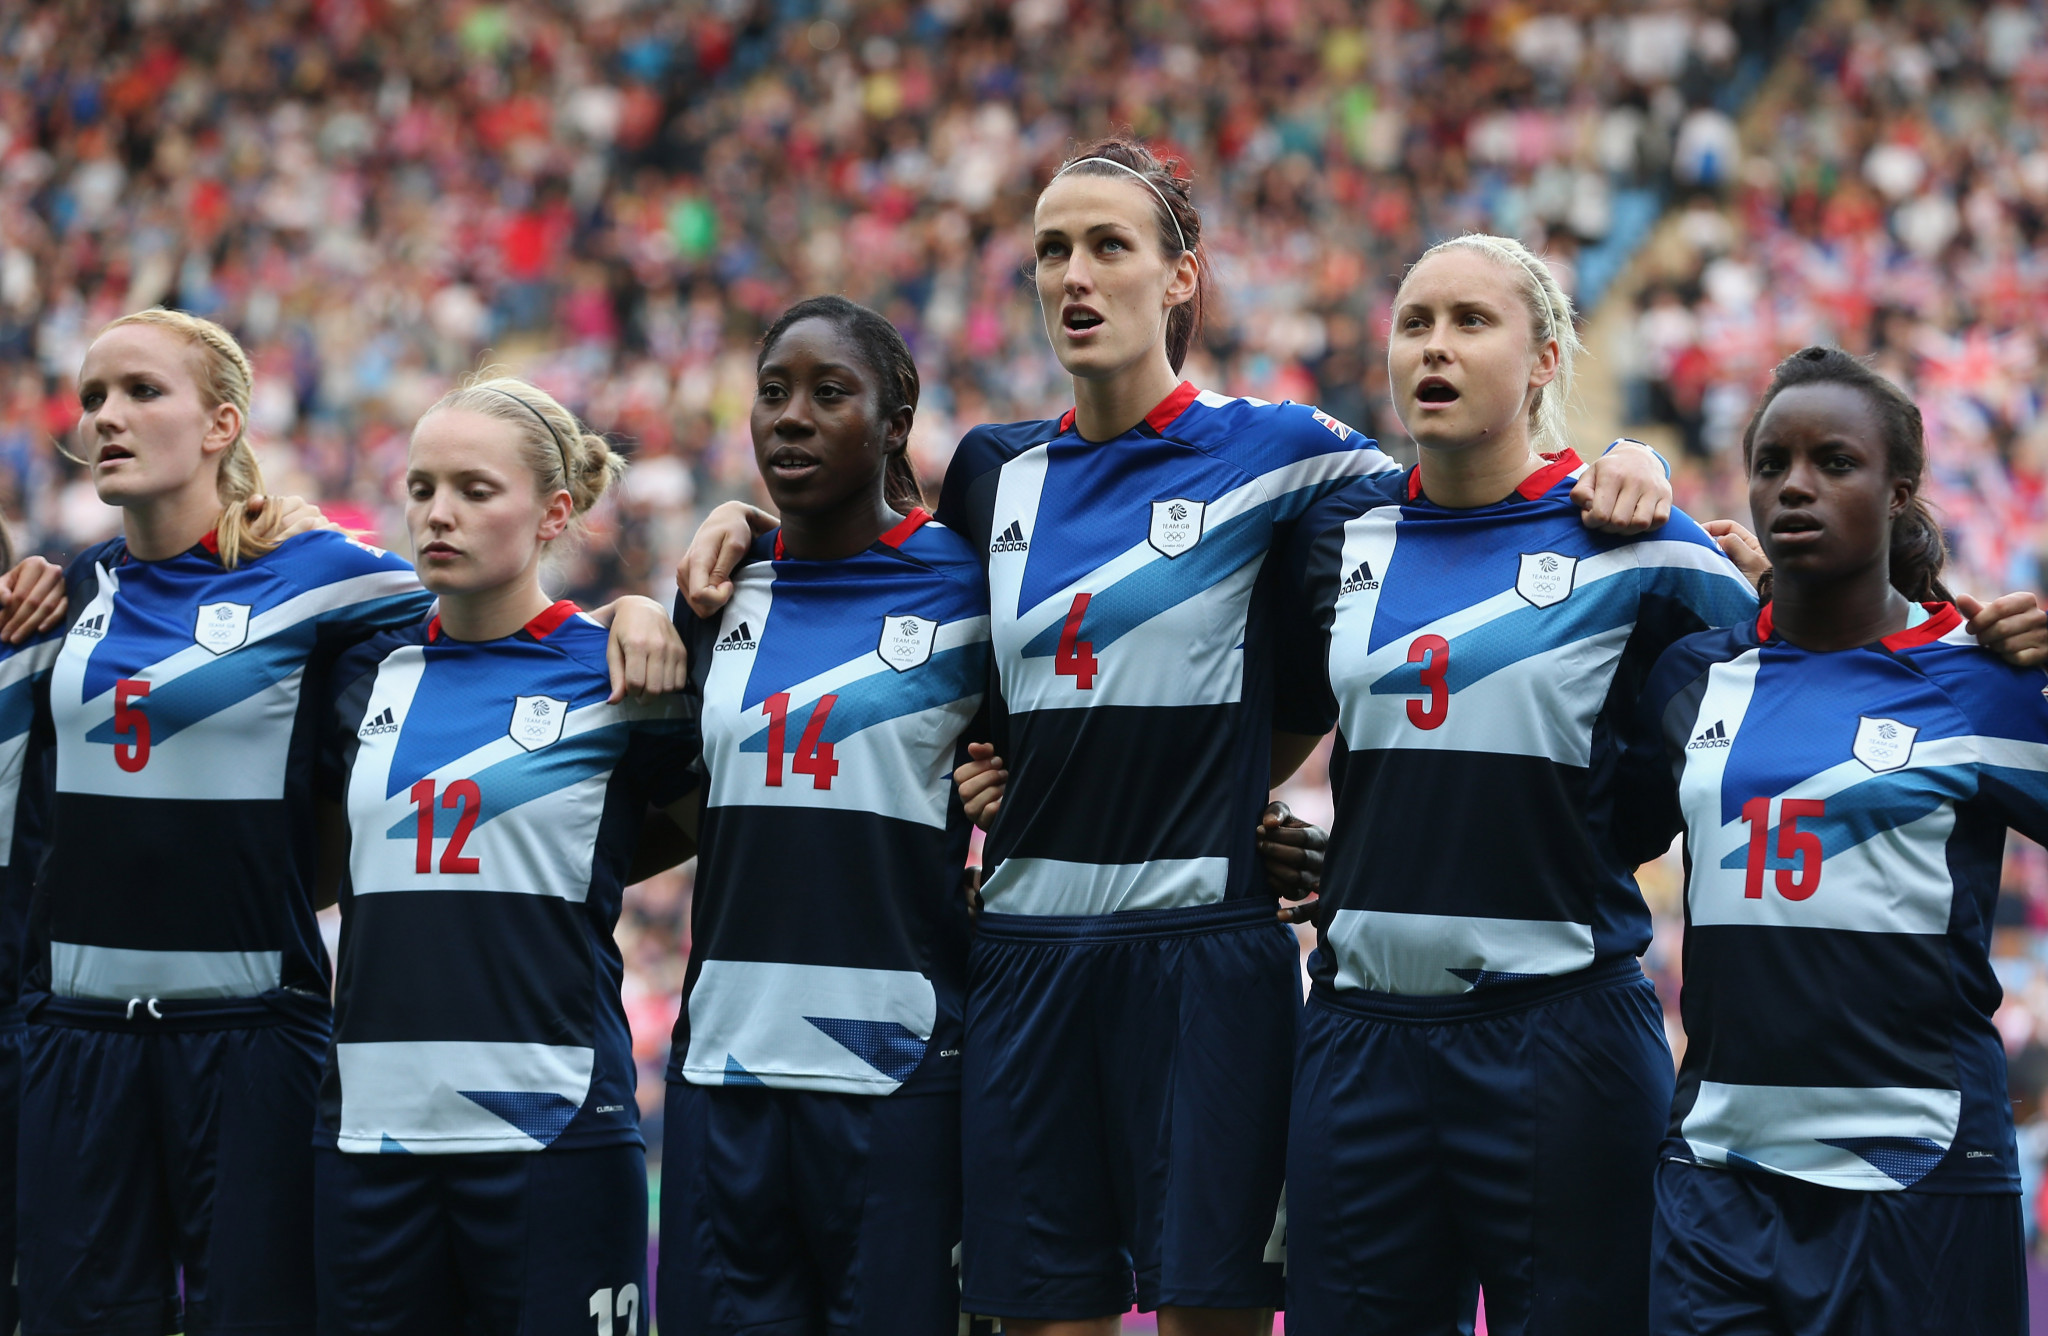 A British women's side competed at London 2012 ©Getty Images